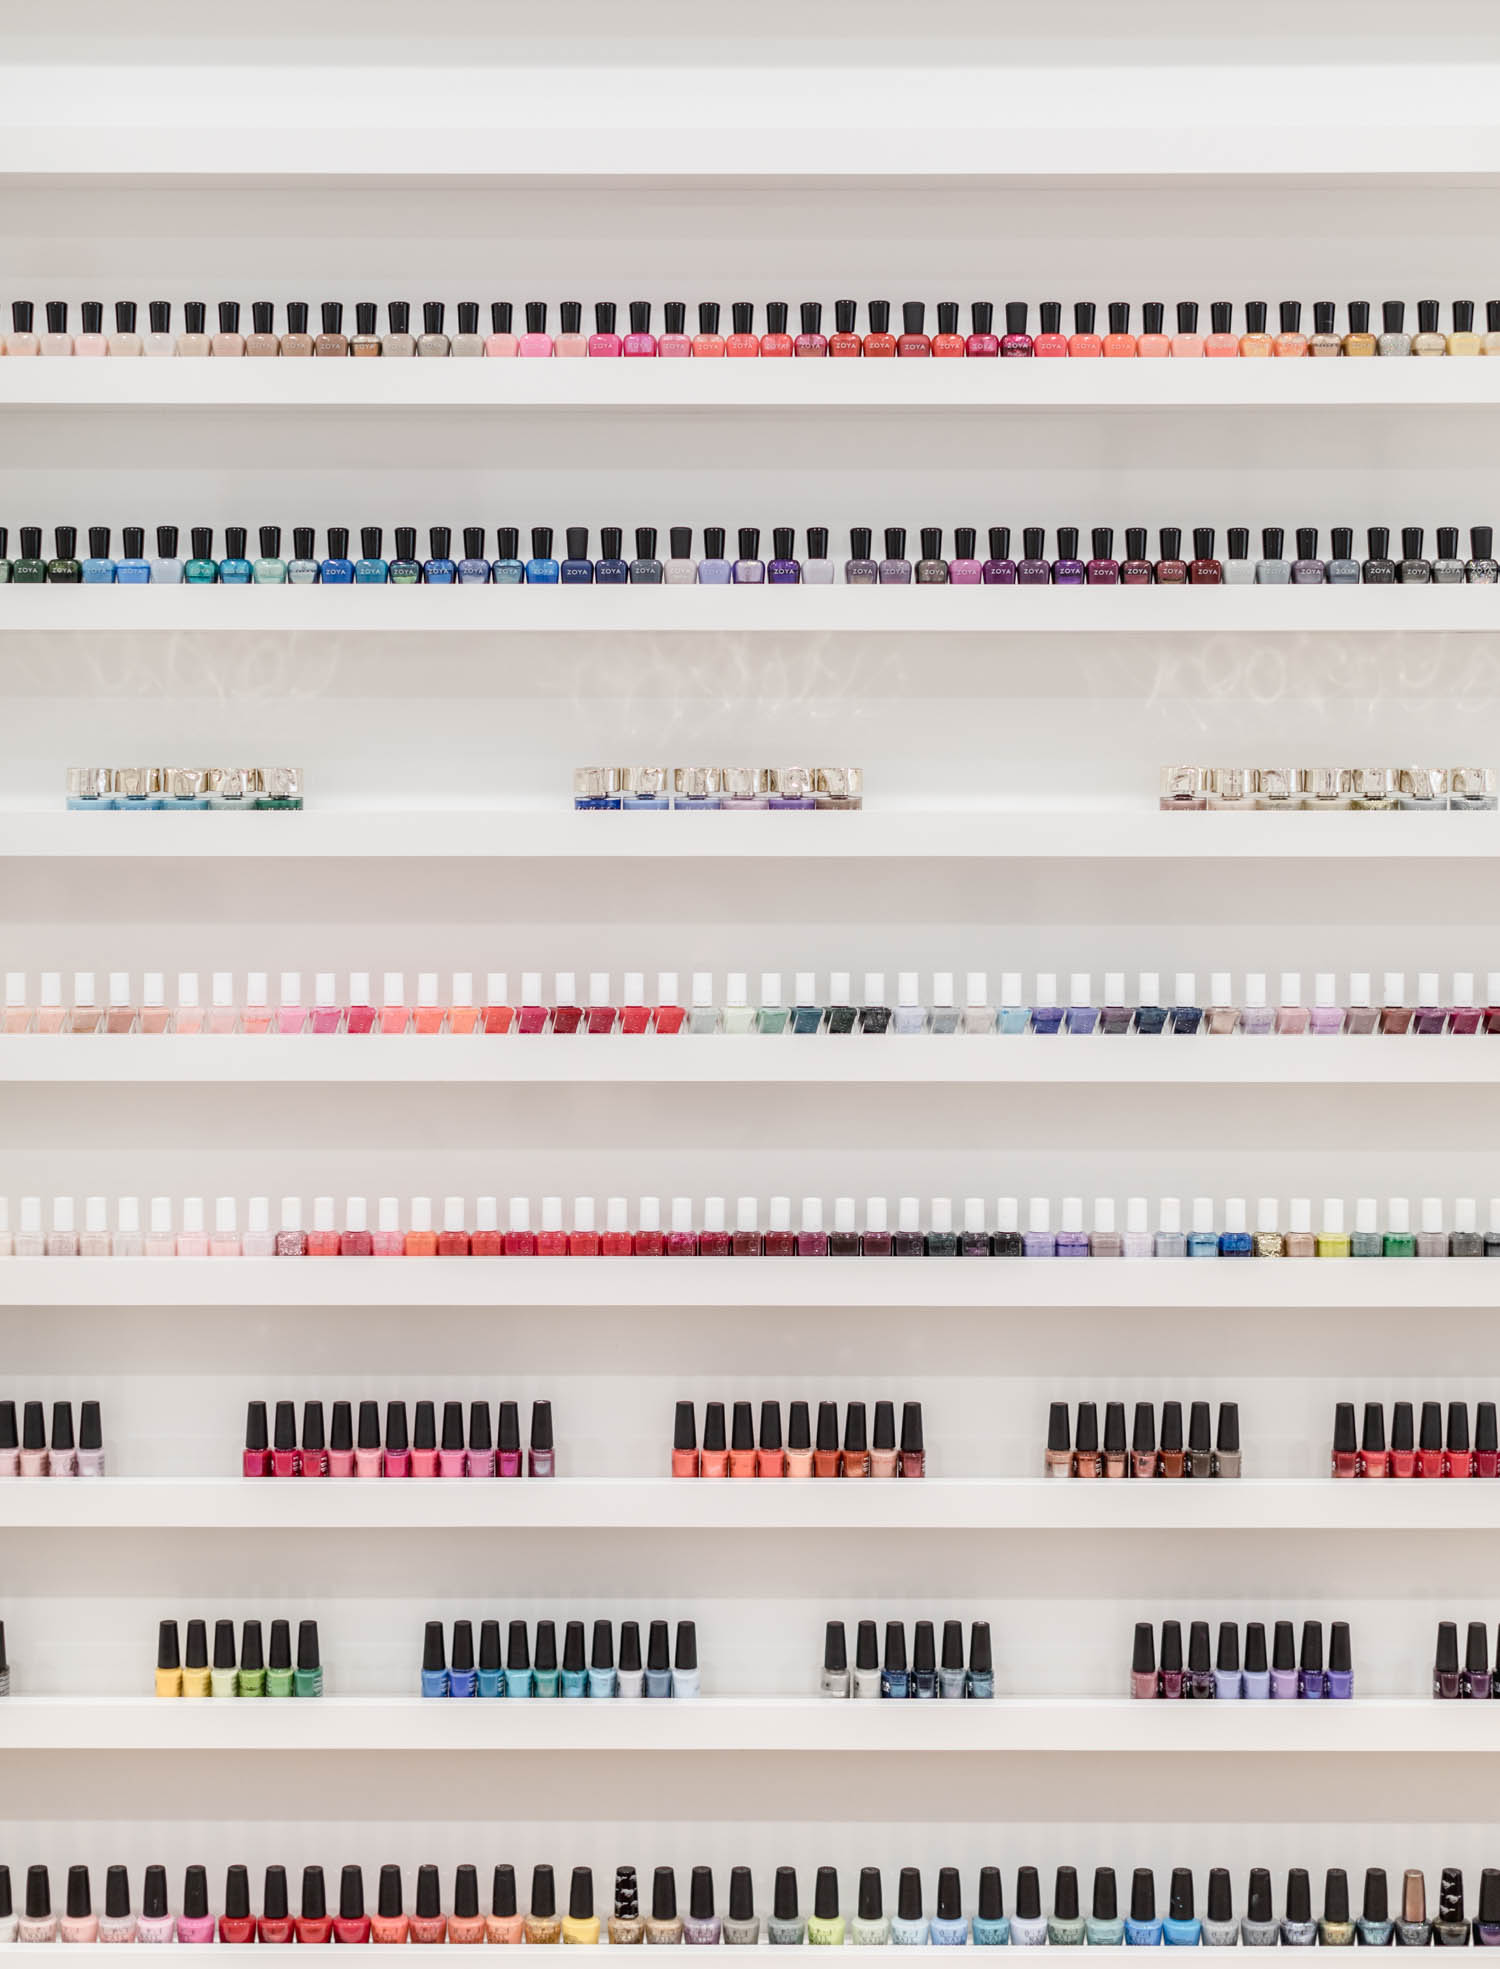 Lacquer Lounge nail polishes. Stay polished.